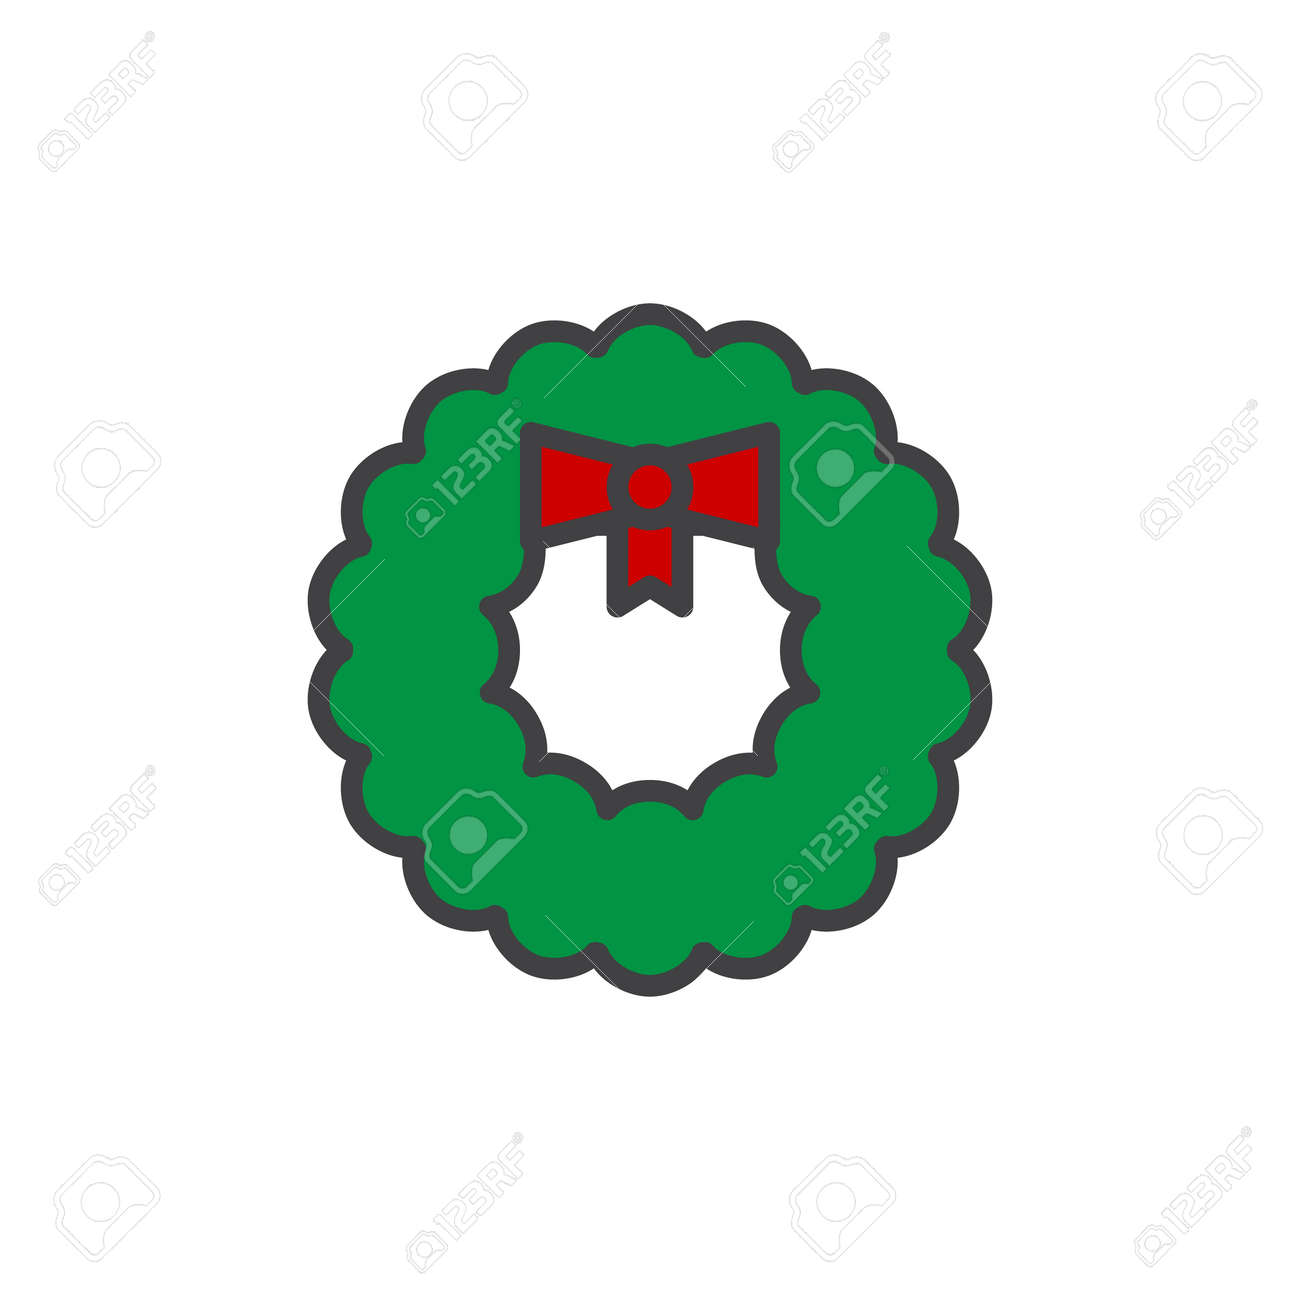 Christmas Wreath Decoration Filled Outline Icon Line Vector Sign Linear Colorful Pictogram Isolated On